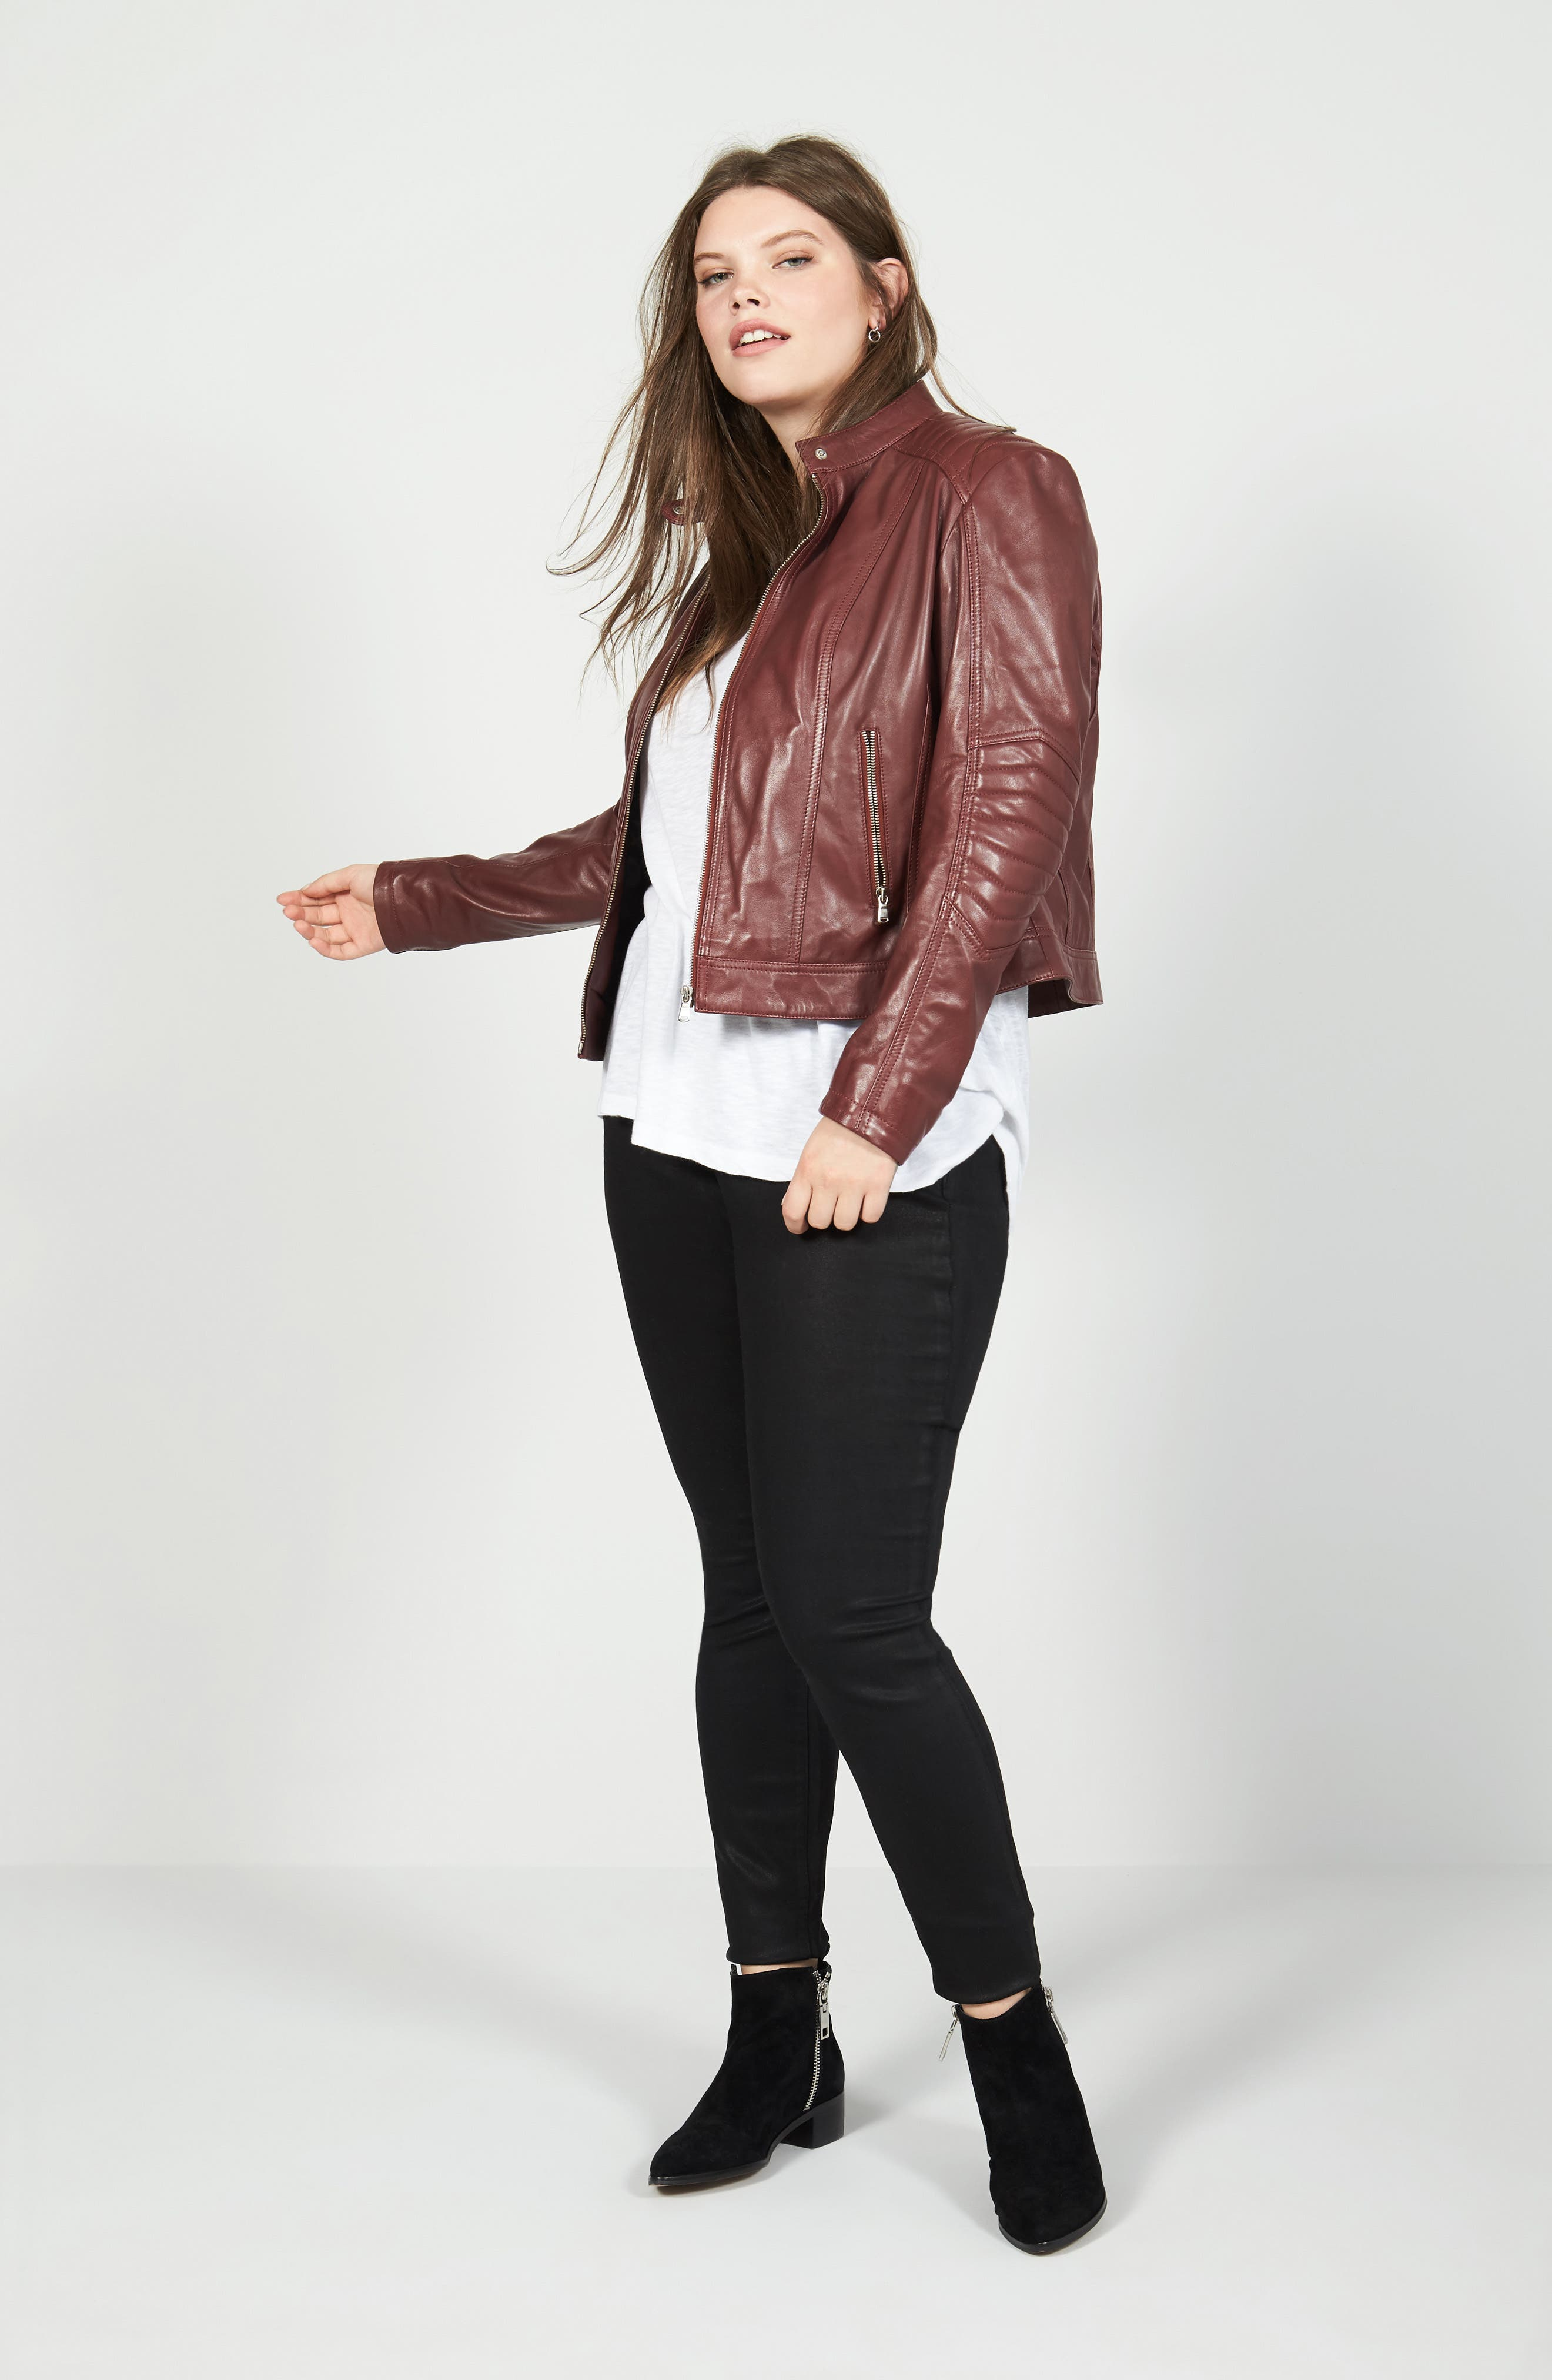 Caslon® Tee, SLINK Jeans Jacket & Jeans Outfit with Accessories (Plus Size)